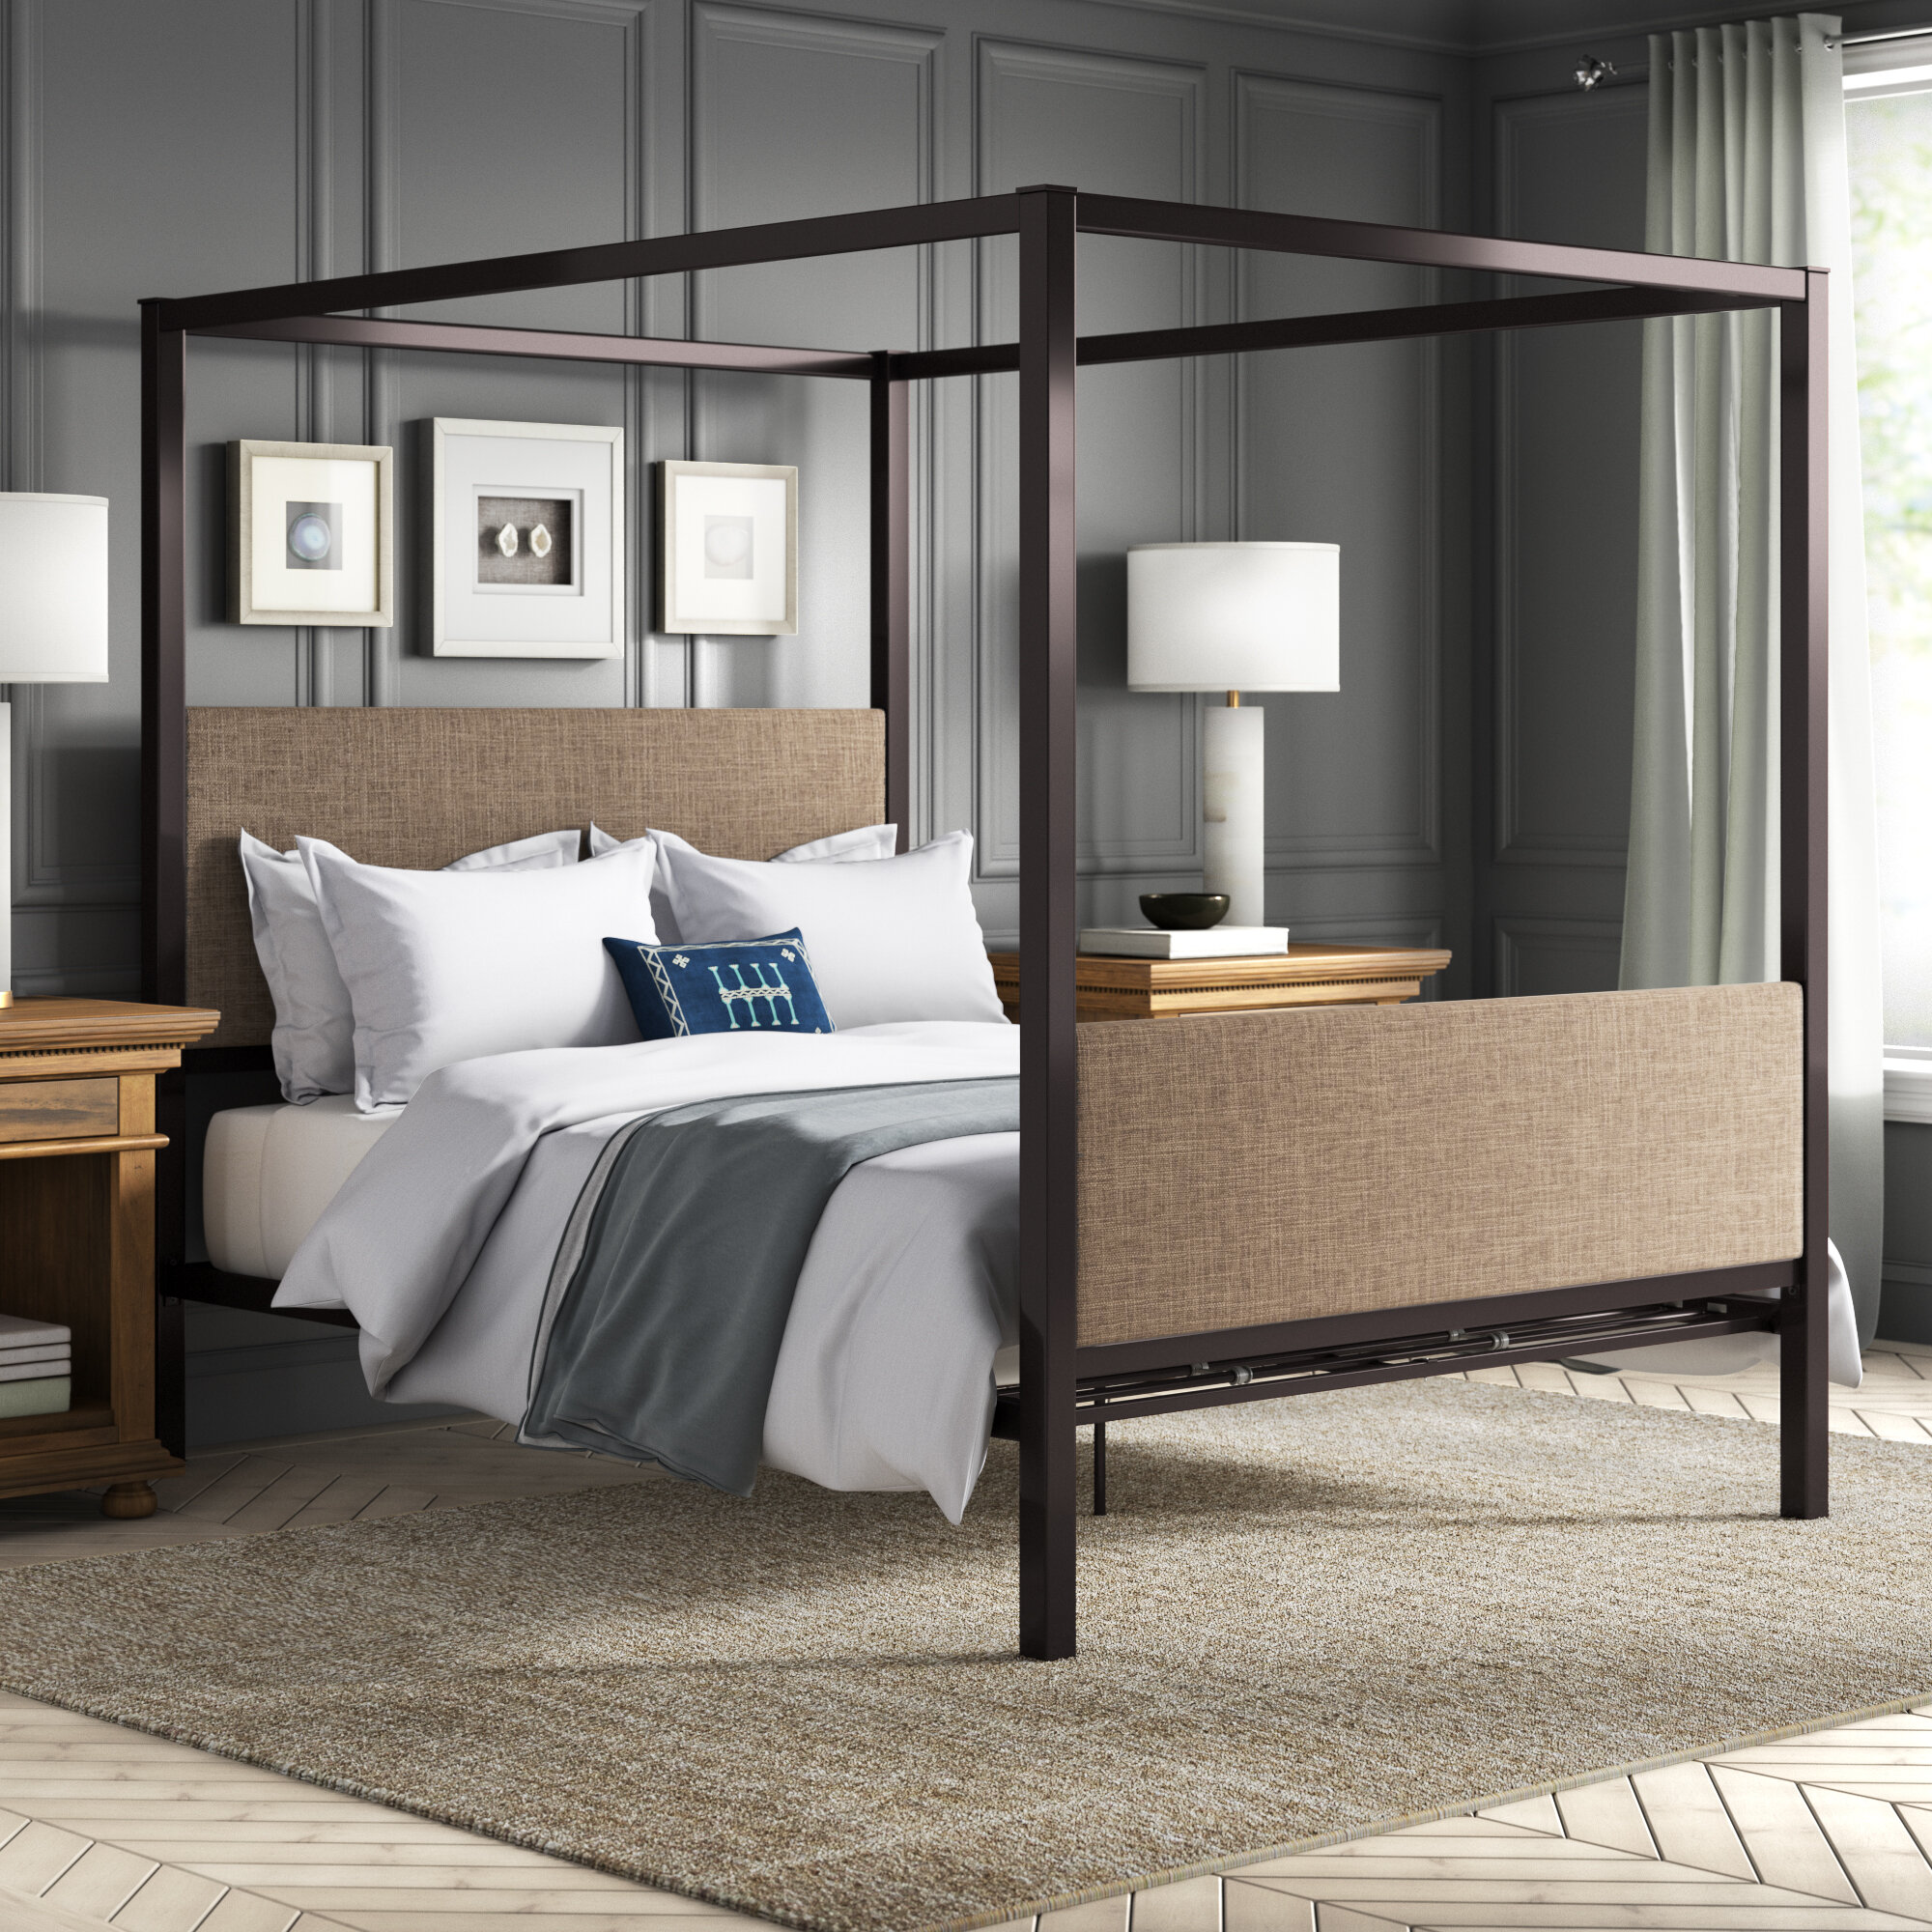 Fromberg queen upholstered canopy bed